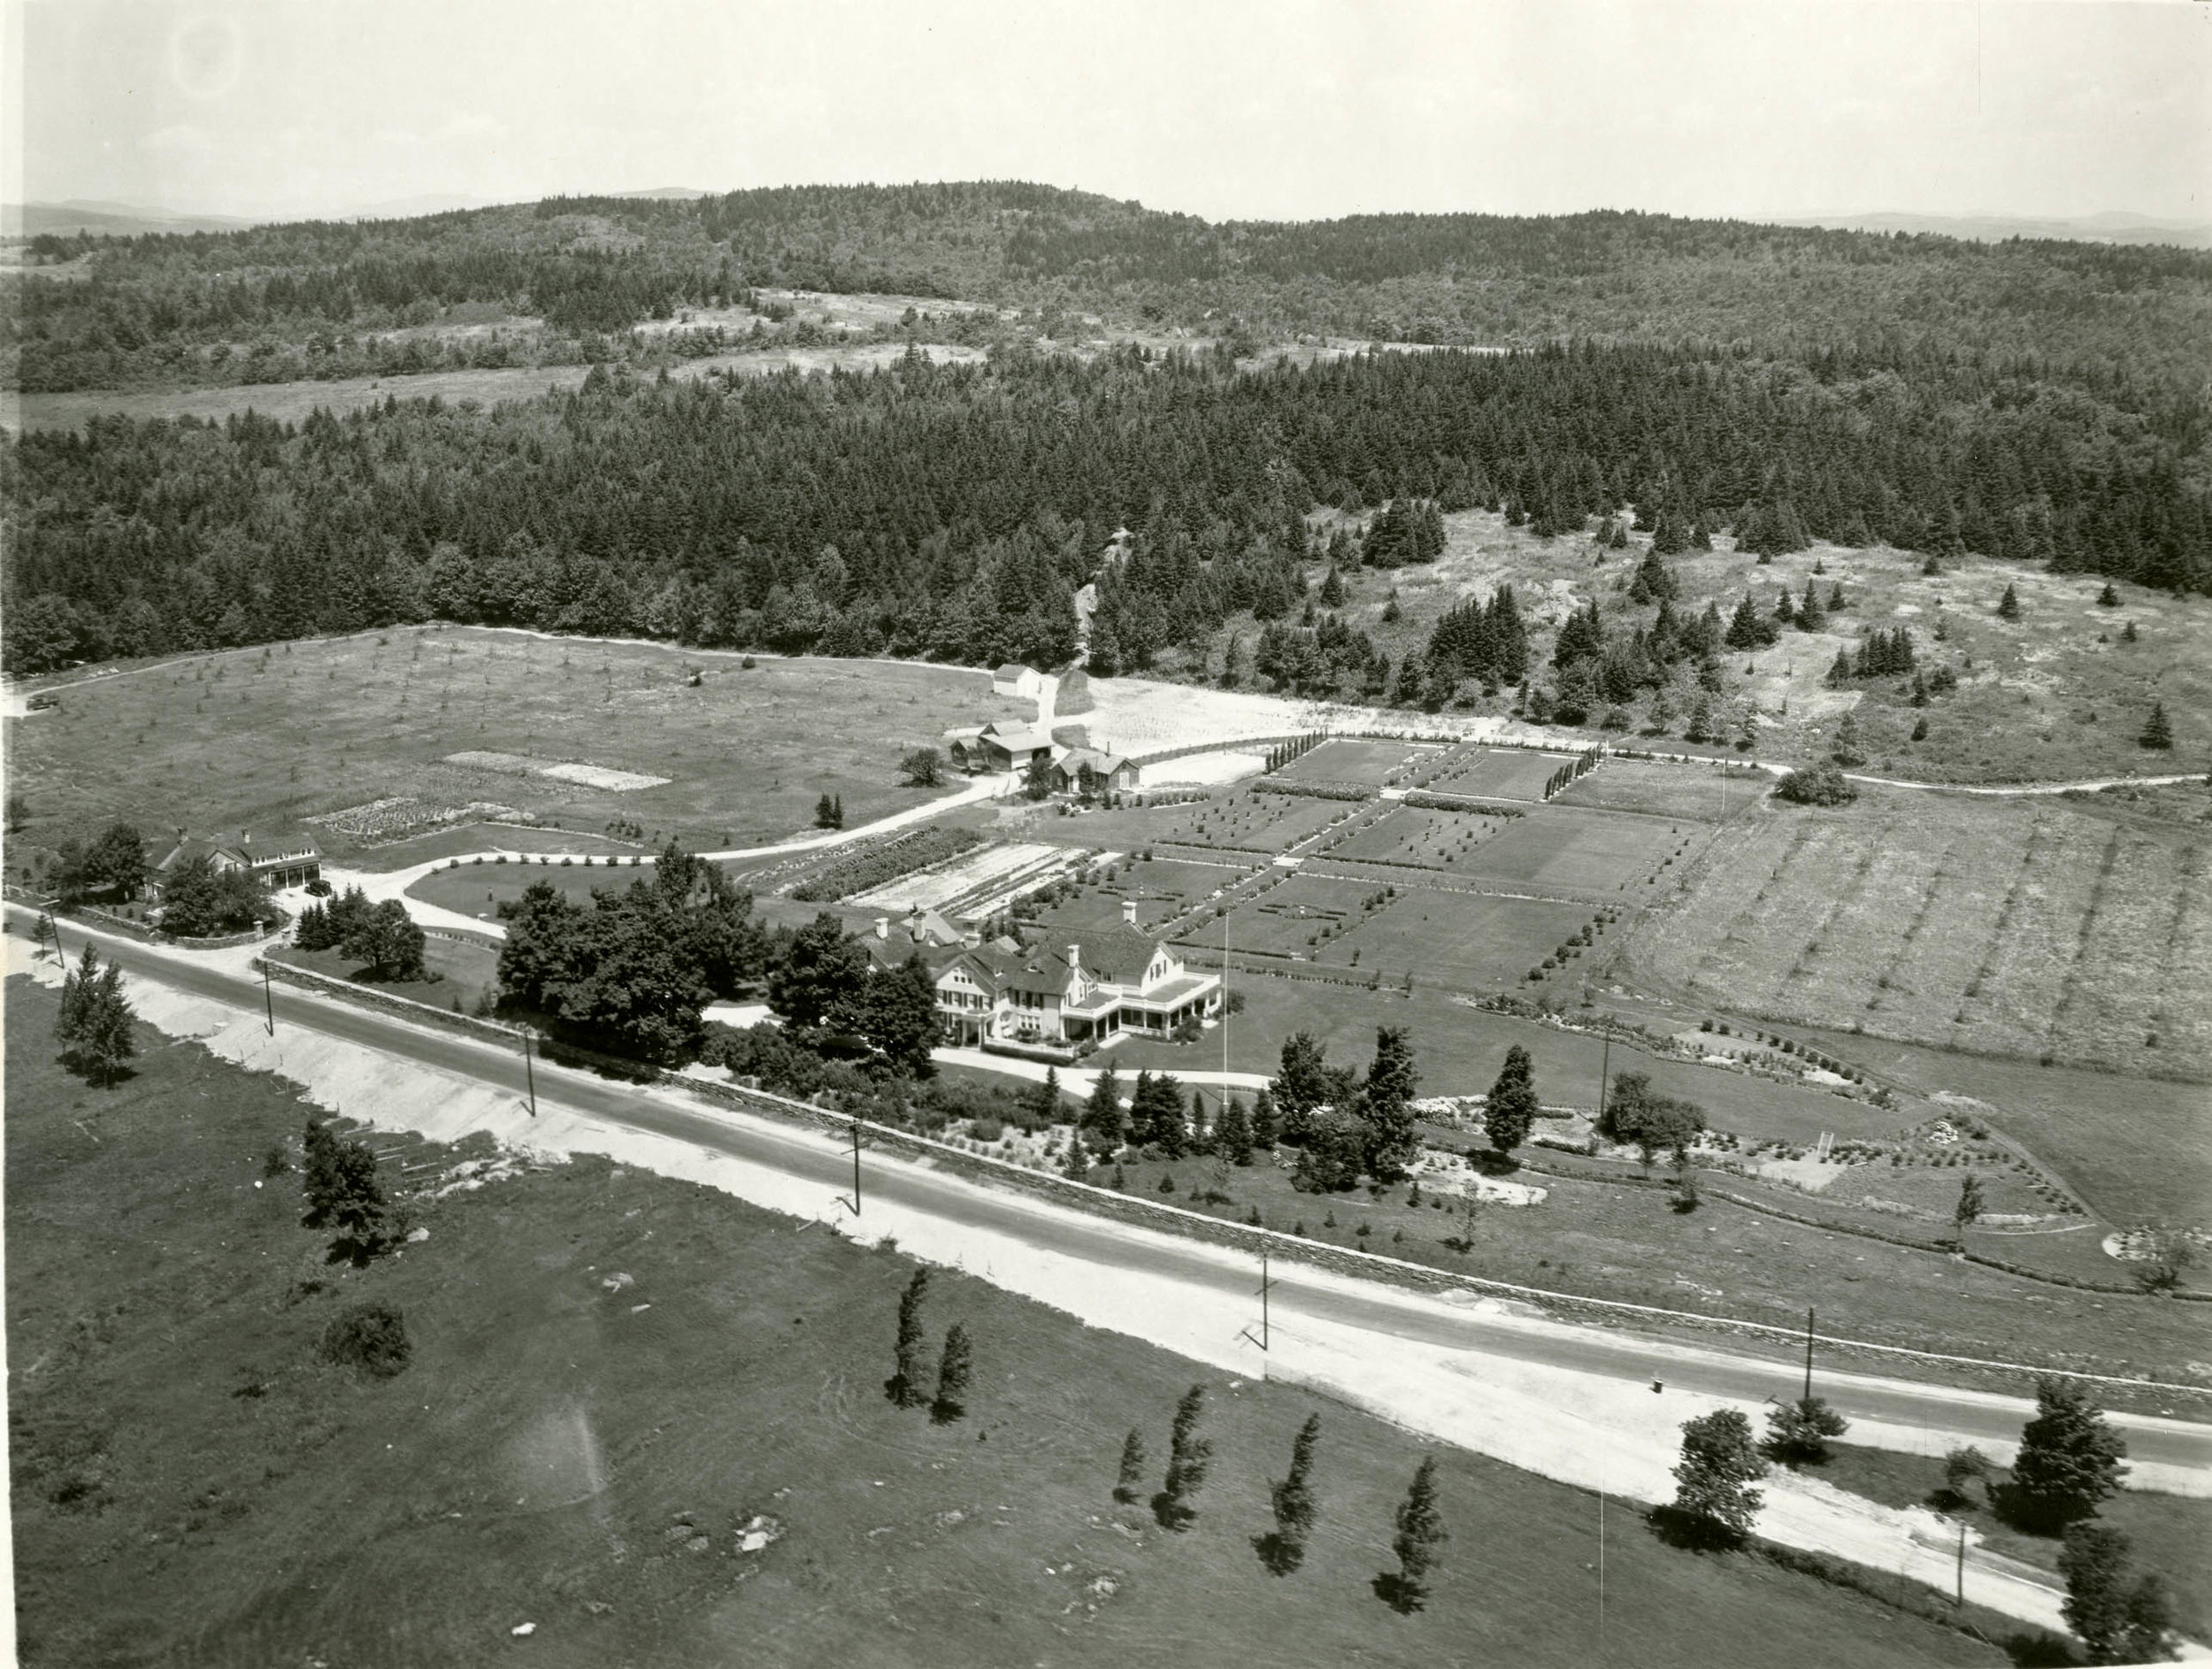 Undated aerial view of Helenscourt grounds [Photo from the Arthur D. Budd Papers, The Trustees of Reservations, Archives & Research Center]